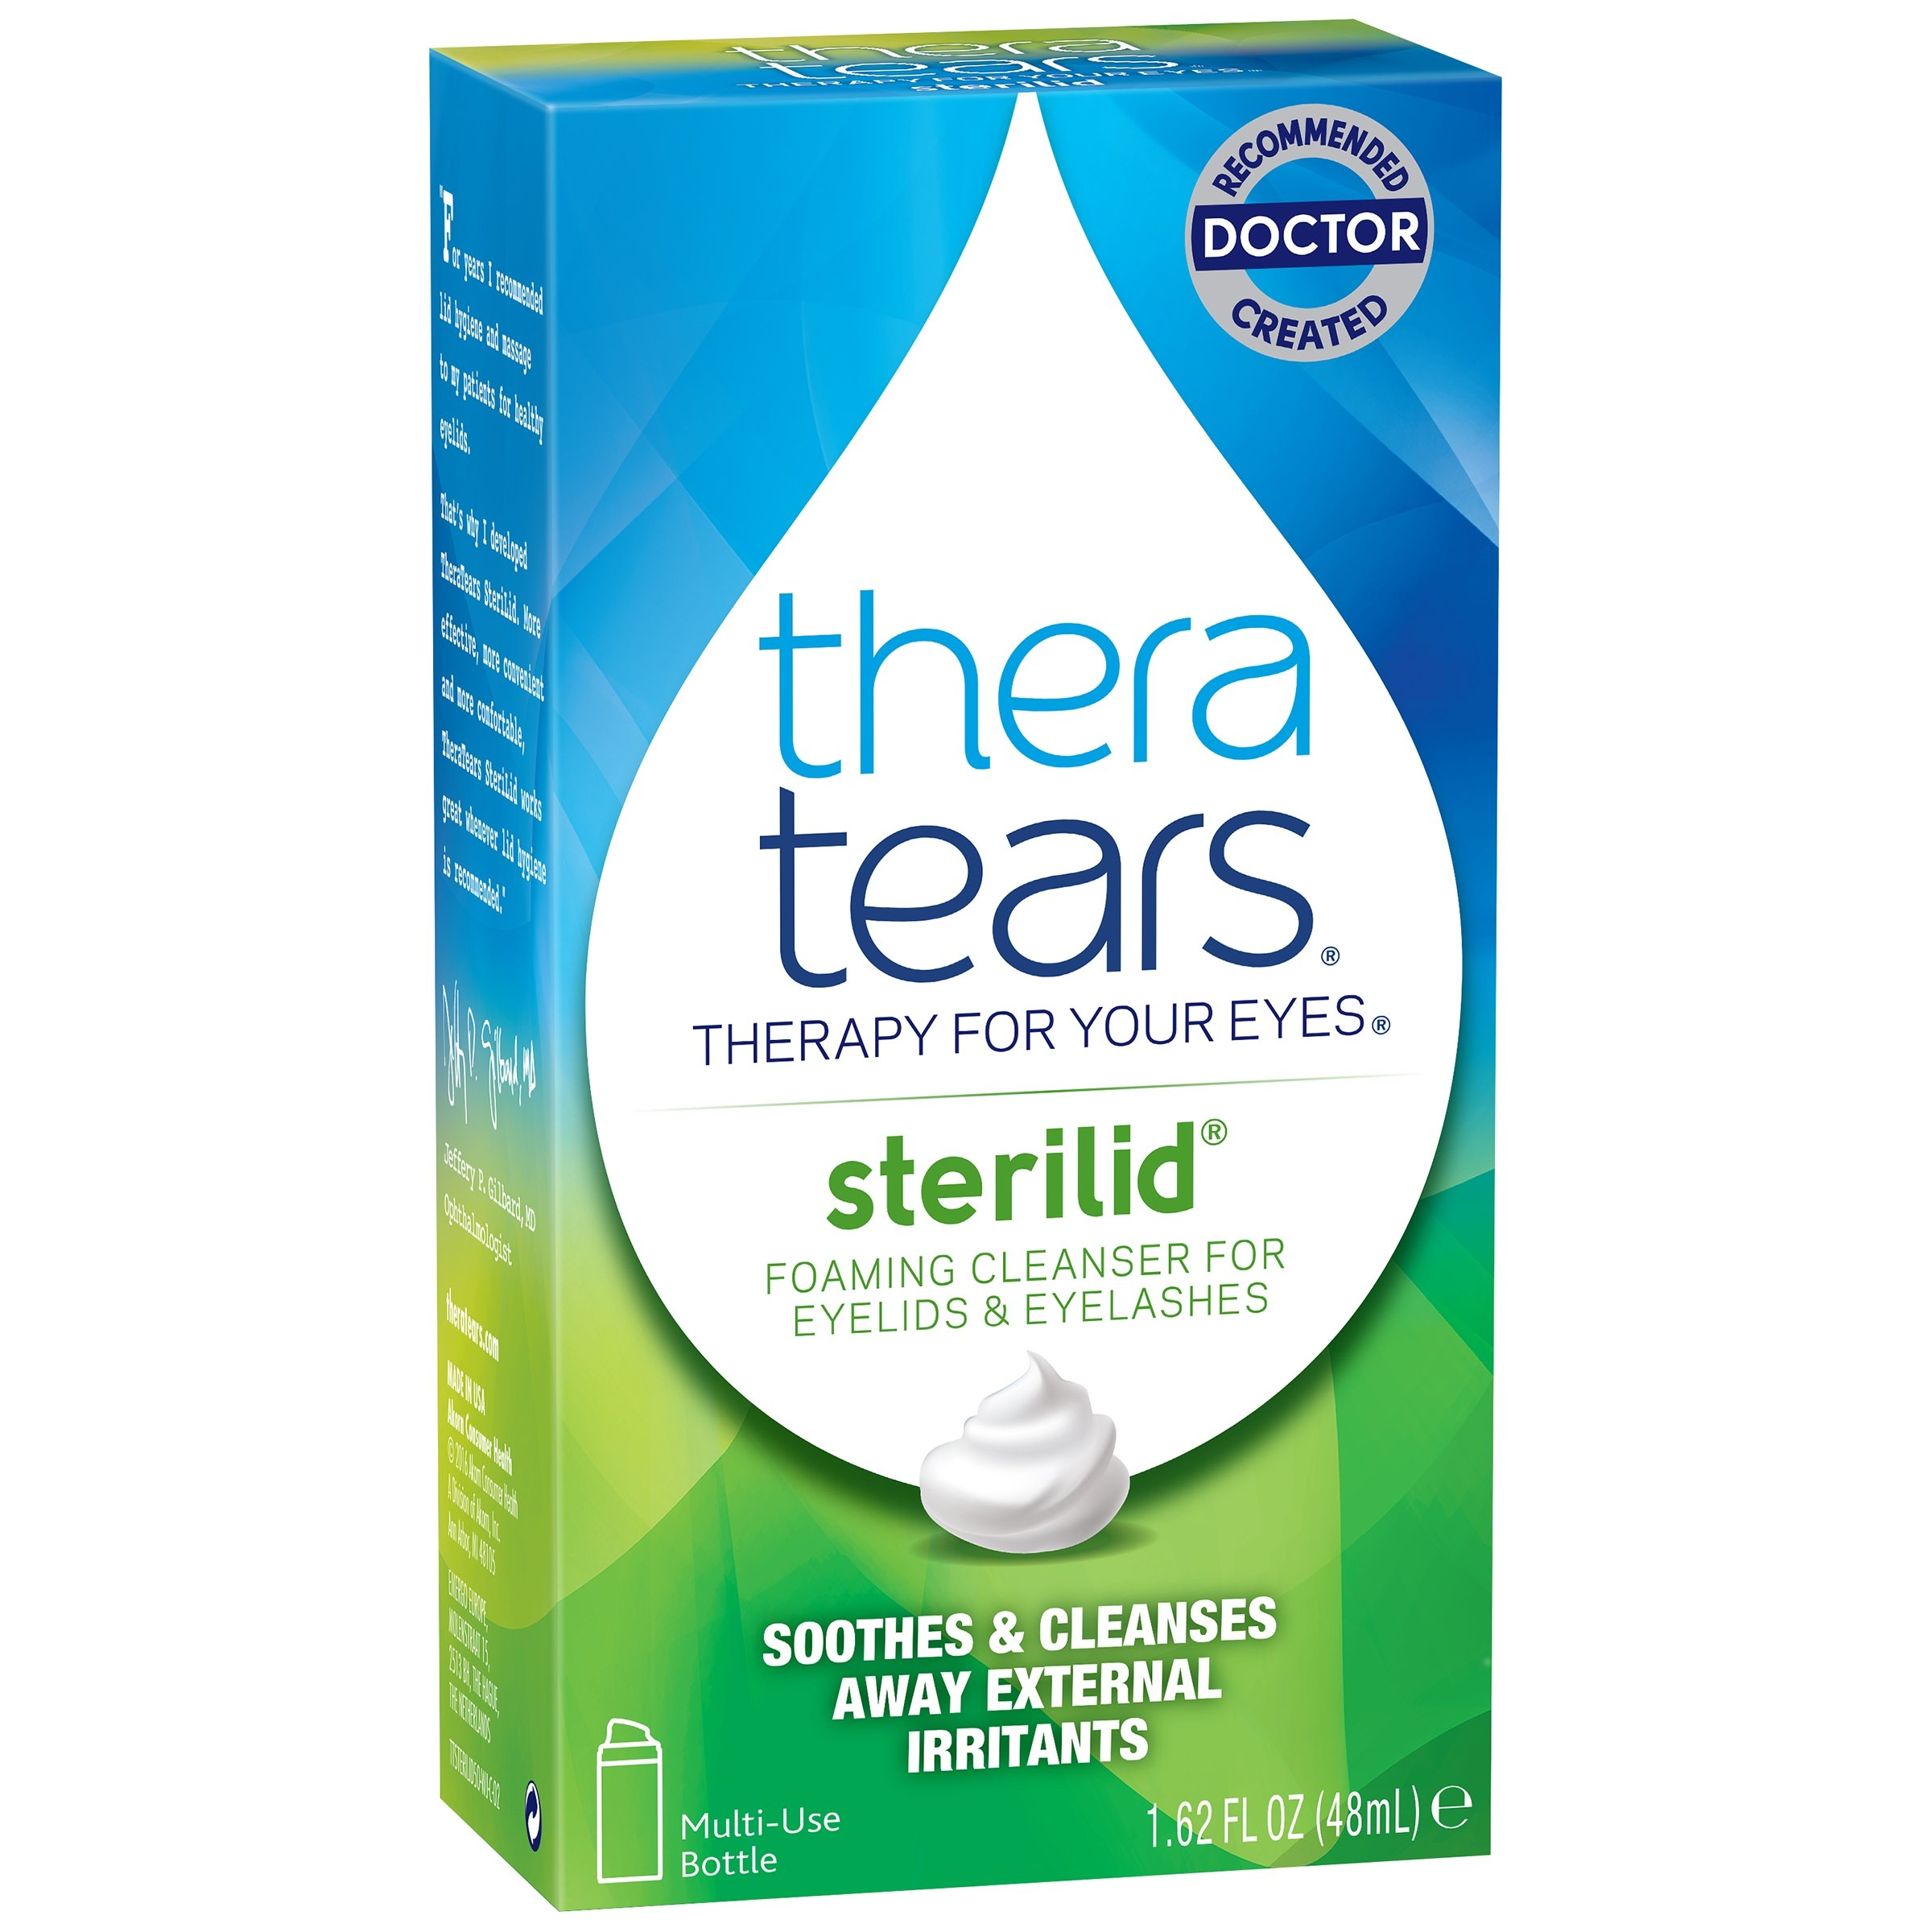 TheraTears Sterilid Eyelid Cleanser, Multi Value 4 Pack ( 6.48 FL OZ Total ) Thera-et by Thera Tears